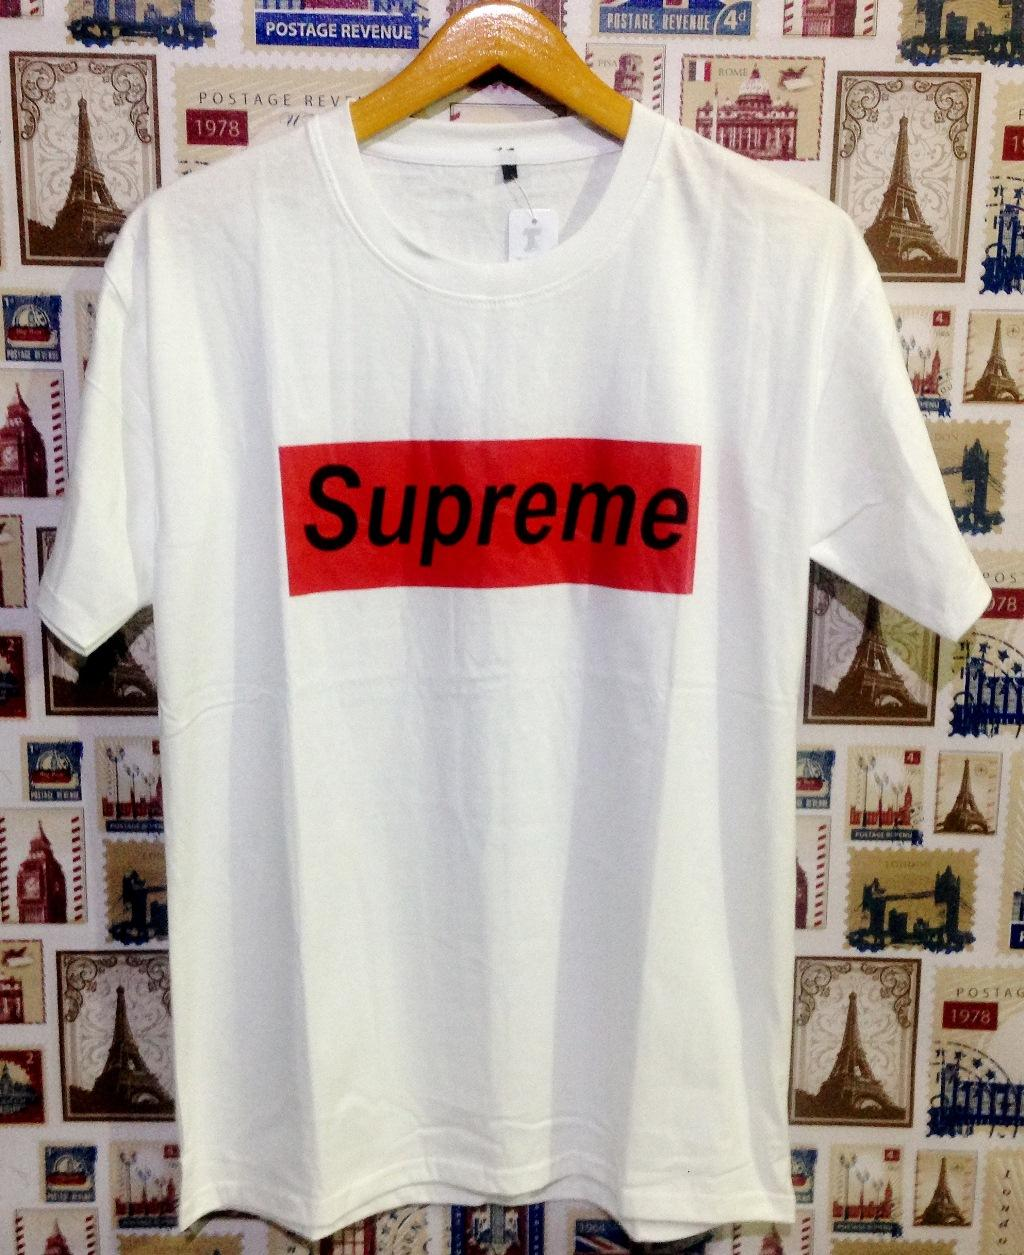 PERSIDENT STORE - Kaos Distro T-Shirt Distro Fashion 100% Soft Cotton Combed 30s Kaos Pria Kaos Fashion Baju Distro T - Shirt Gambar: Supreme Putih Marvel ...